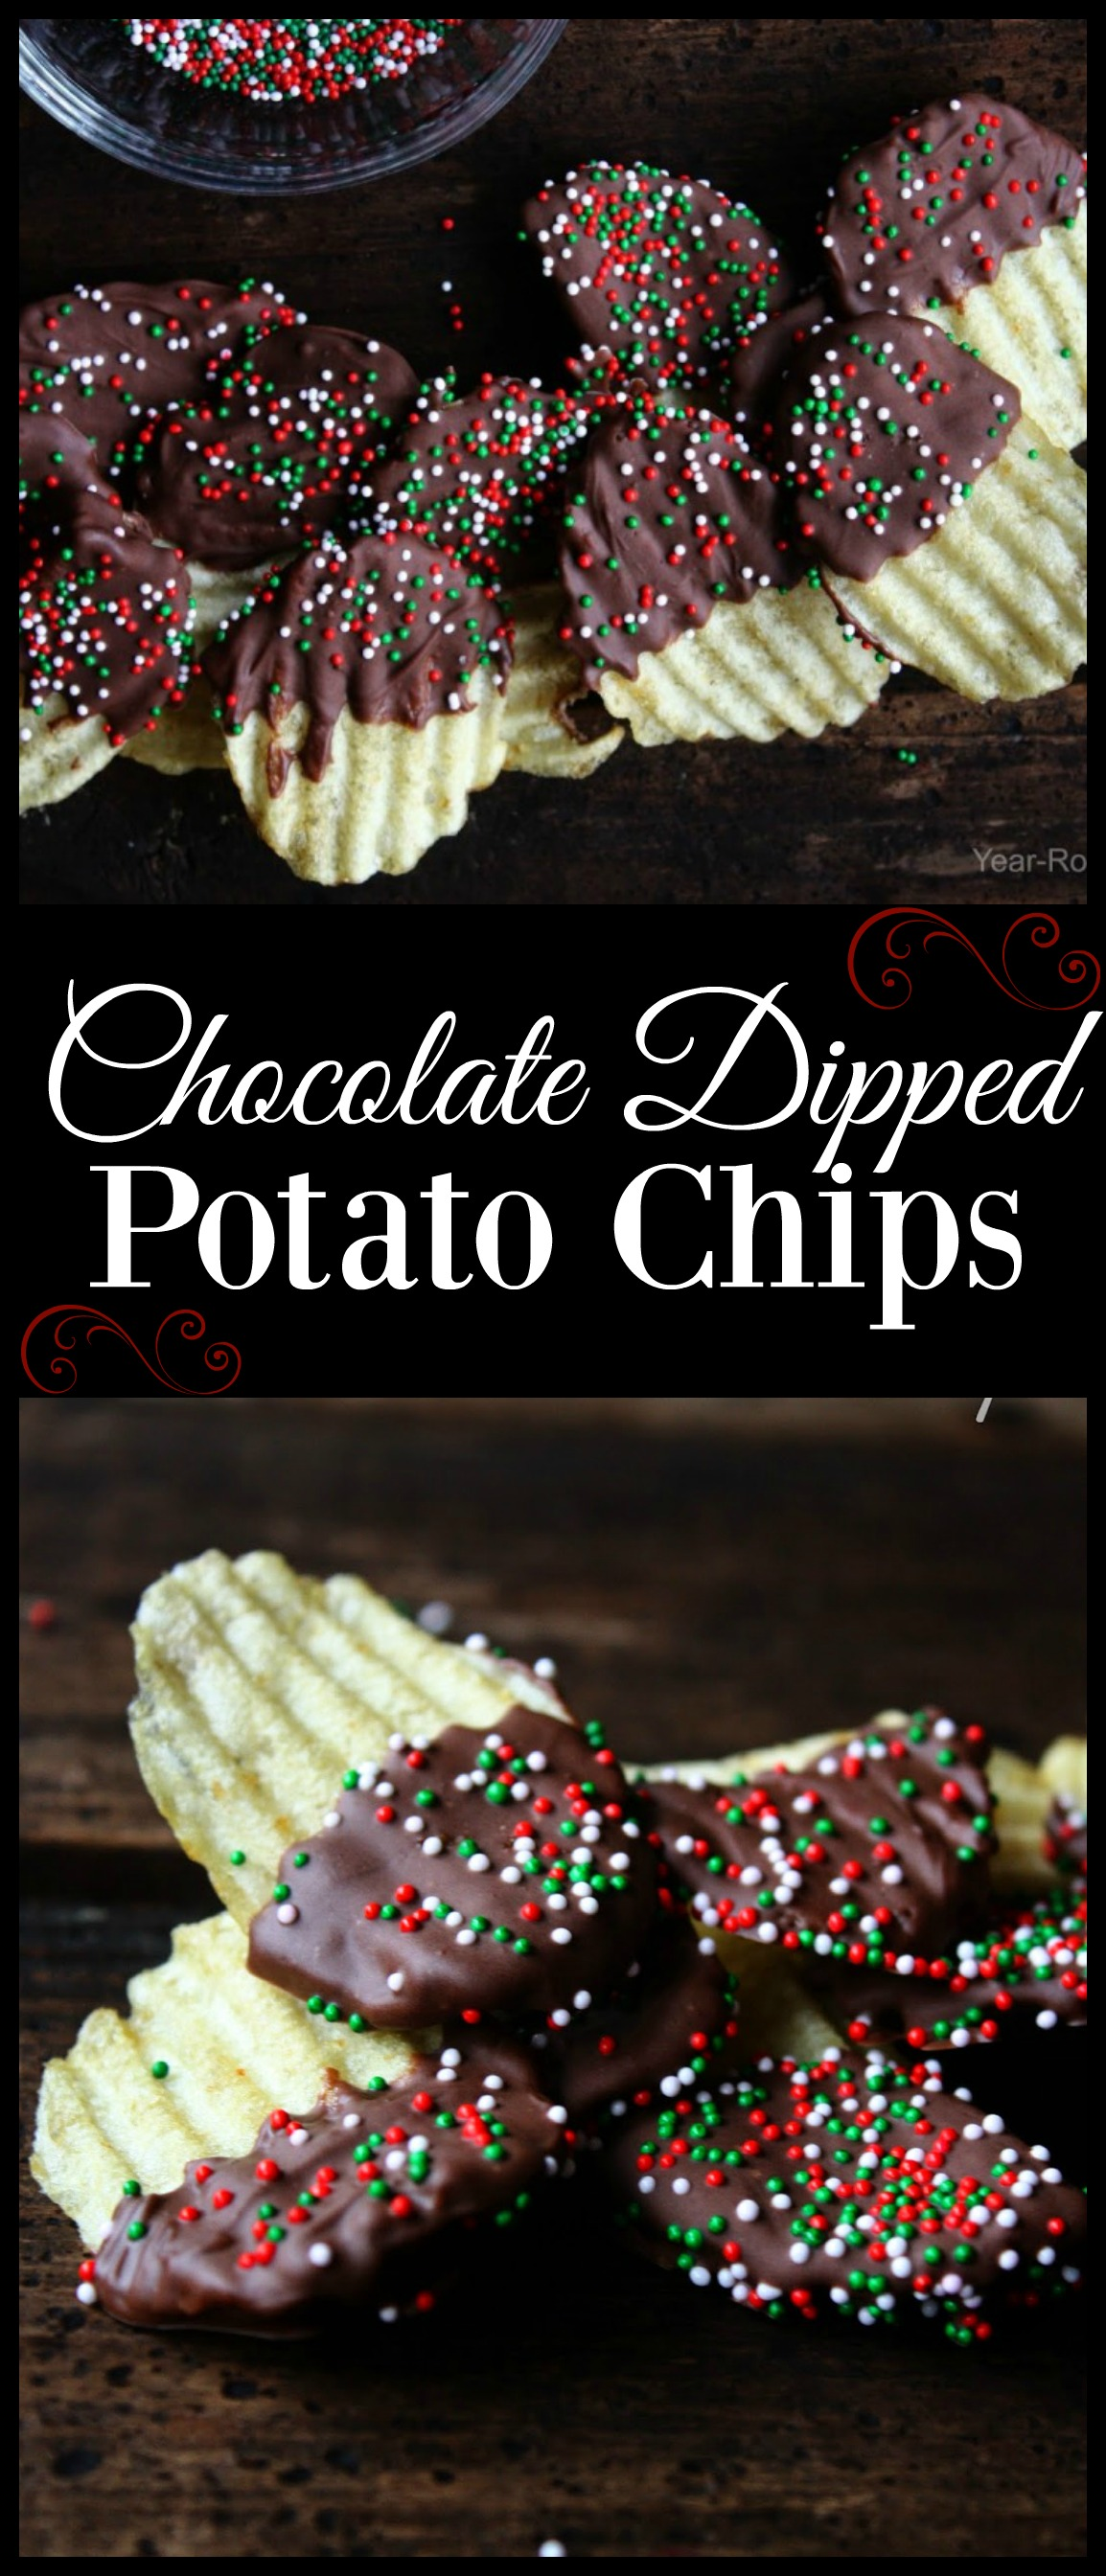 Chocolate Dipped Potato Chips - Daily Appetite